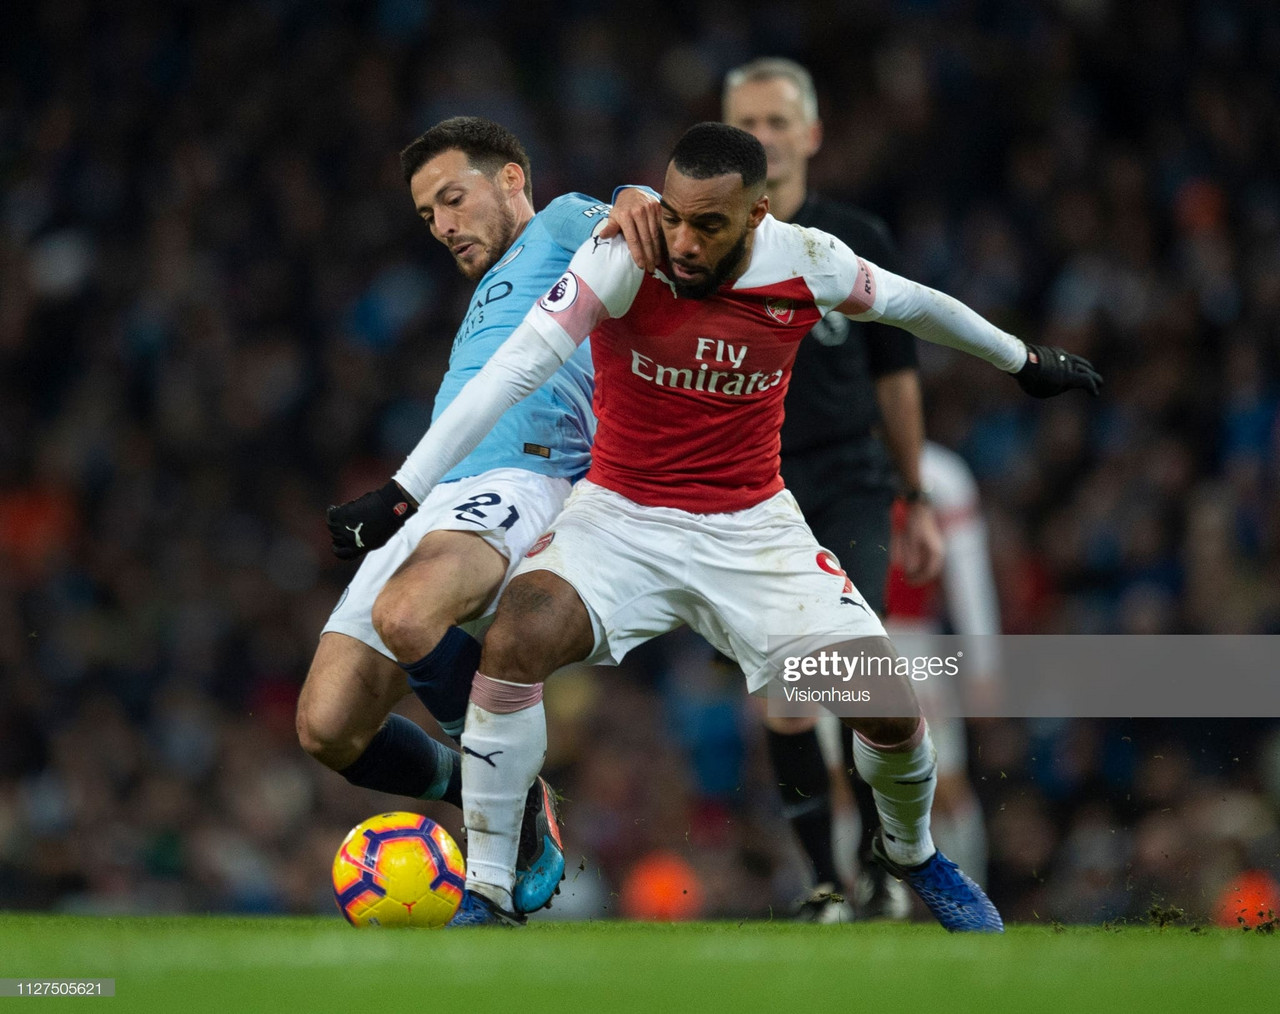 Arsenal vs Manchester City Preview: Citizens look to bounce back from derby disappointment